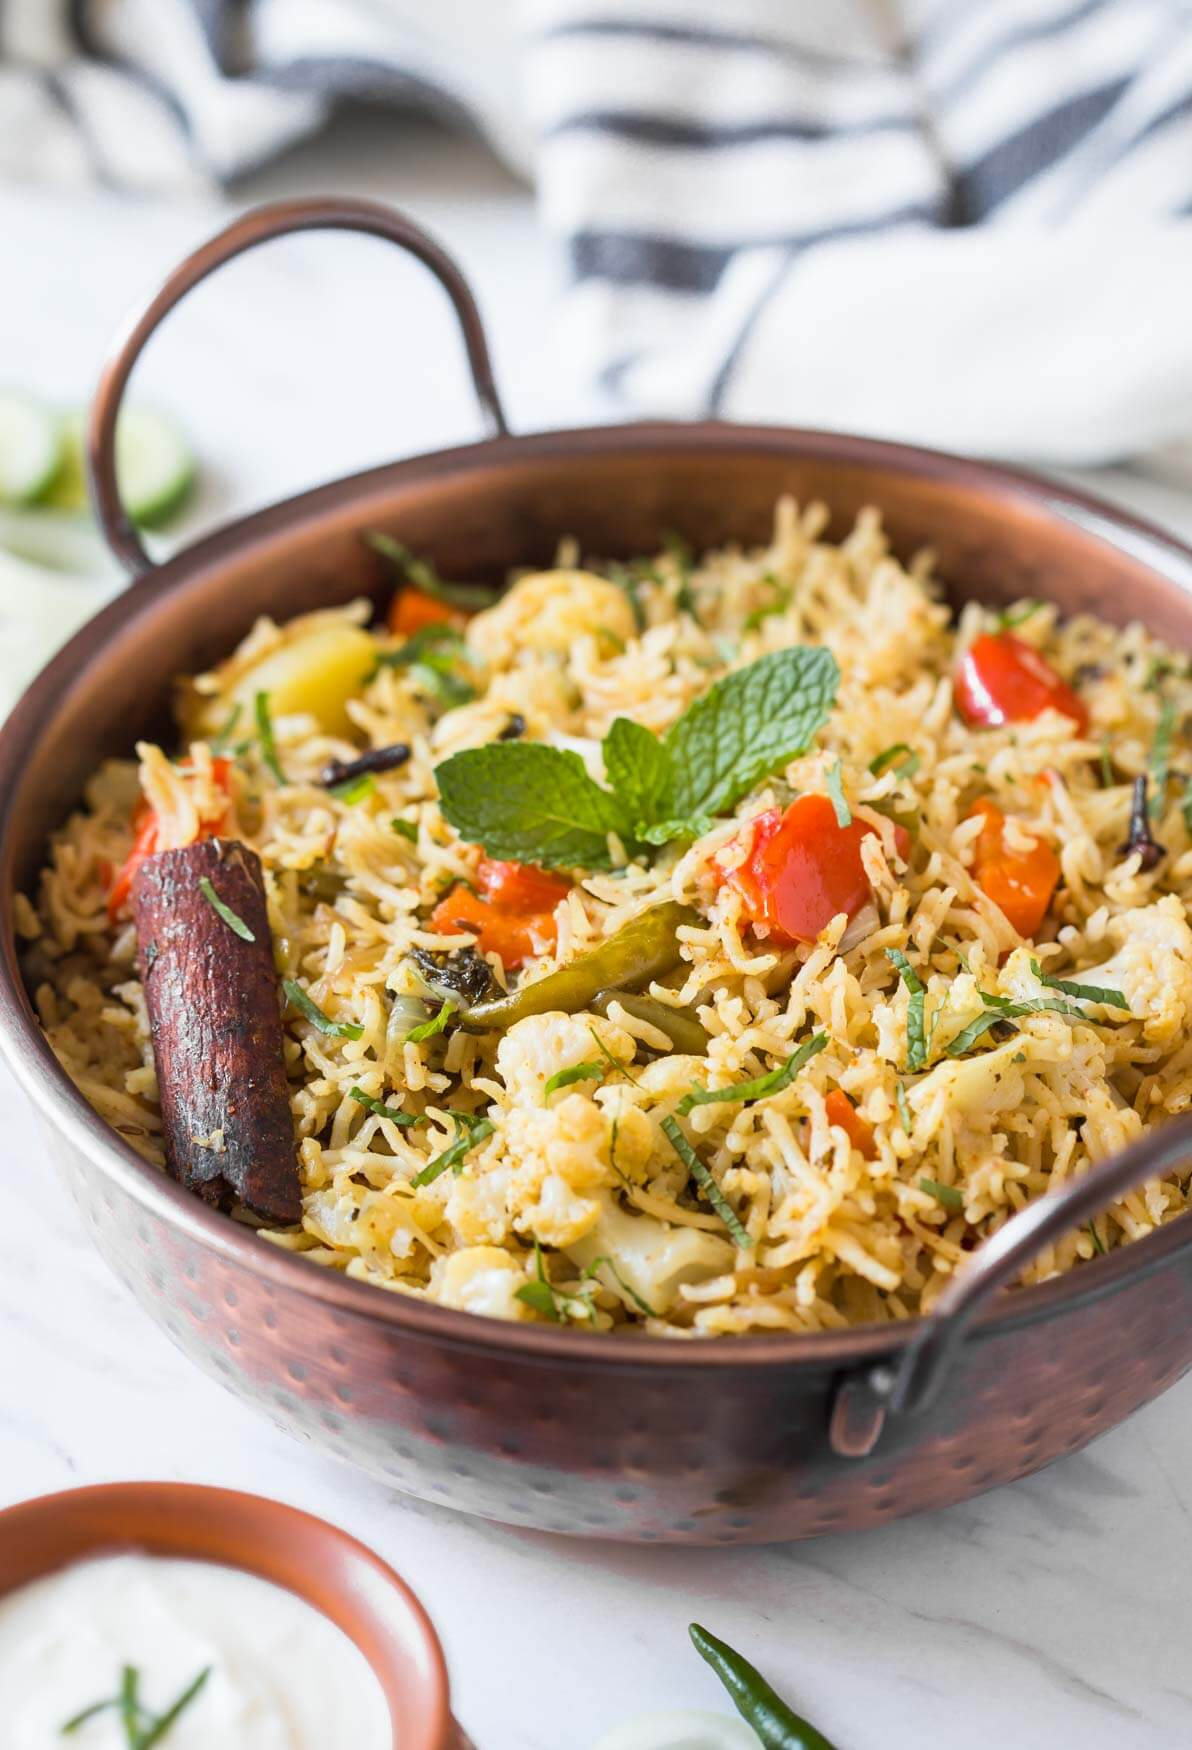 How To Make Instant Pot Vegetable Biryani With Authentic Flavors